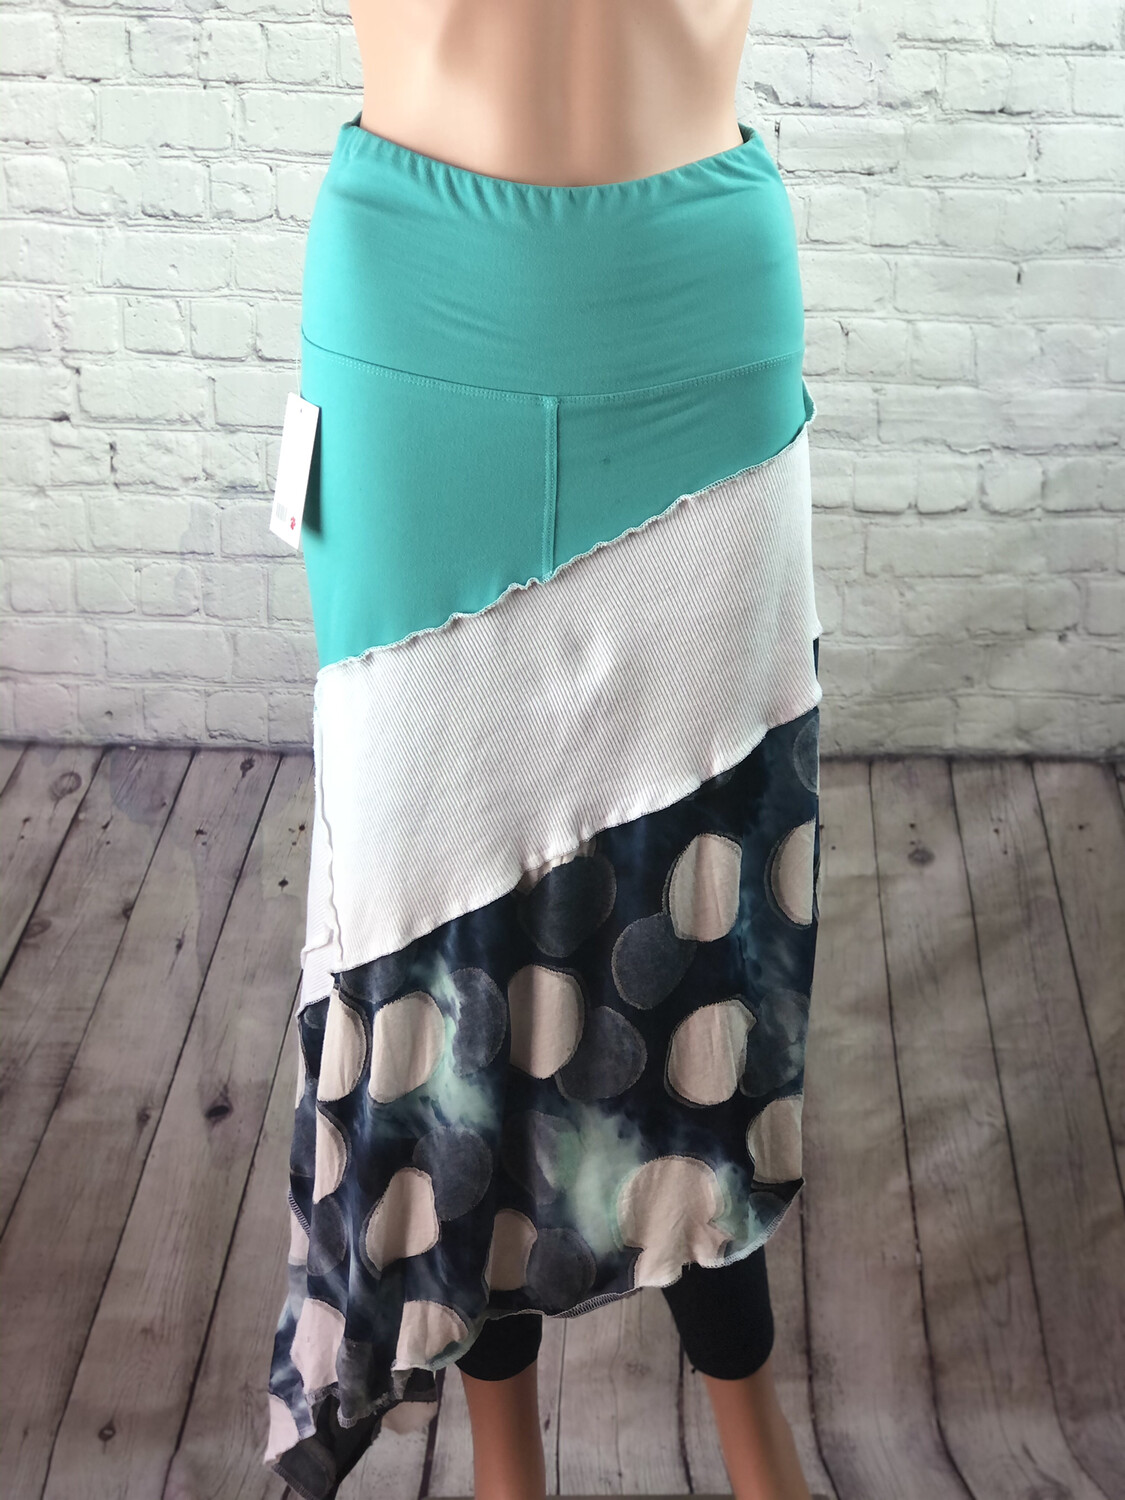 S Threads Upcycled One Size Spandex Band Teal Blue White Dot Asymmetrical Skirt